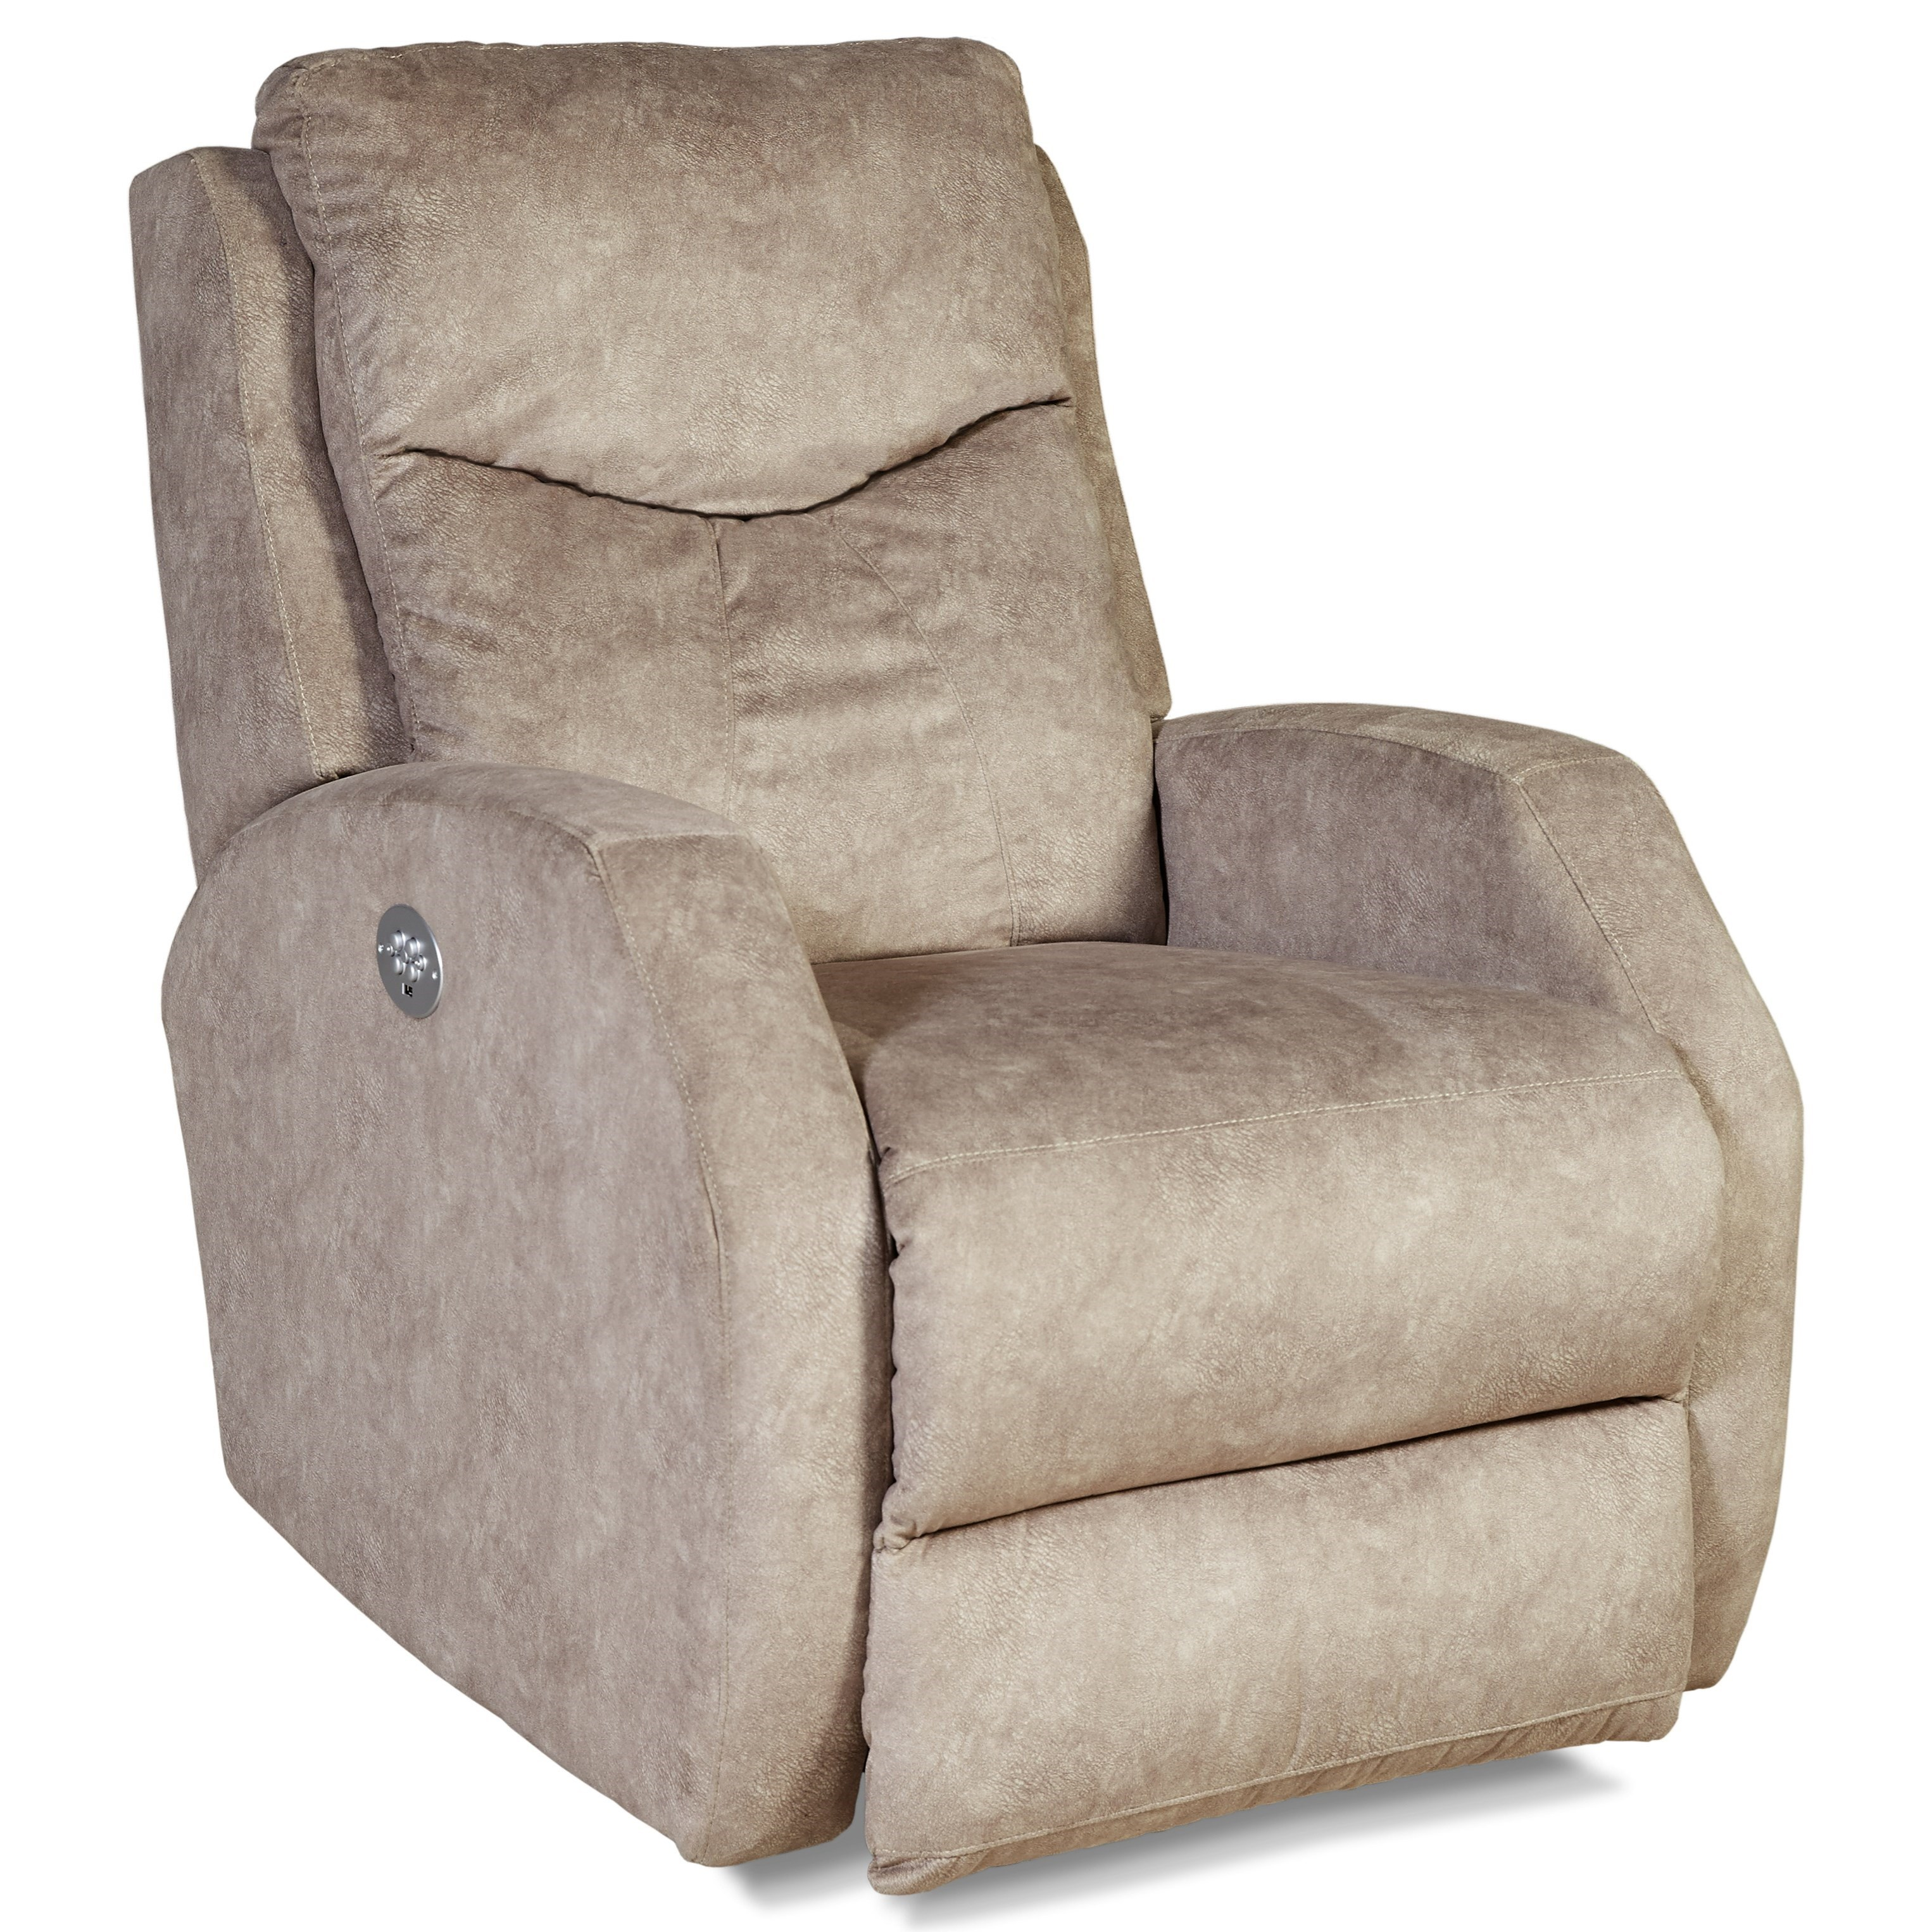 Tip Top Power Headrest Lift Recliner w/ SoCozi by Southern Motion at Value City Furniture